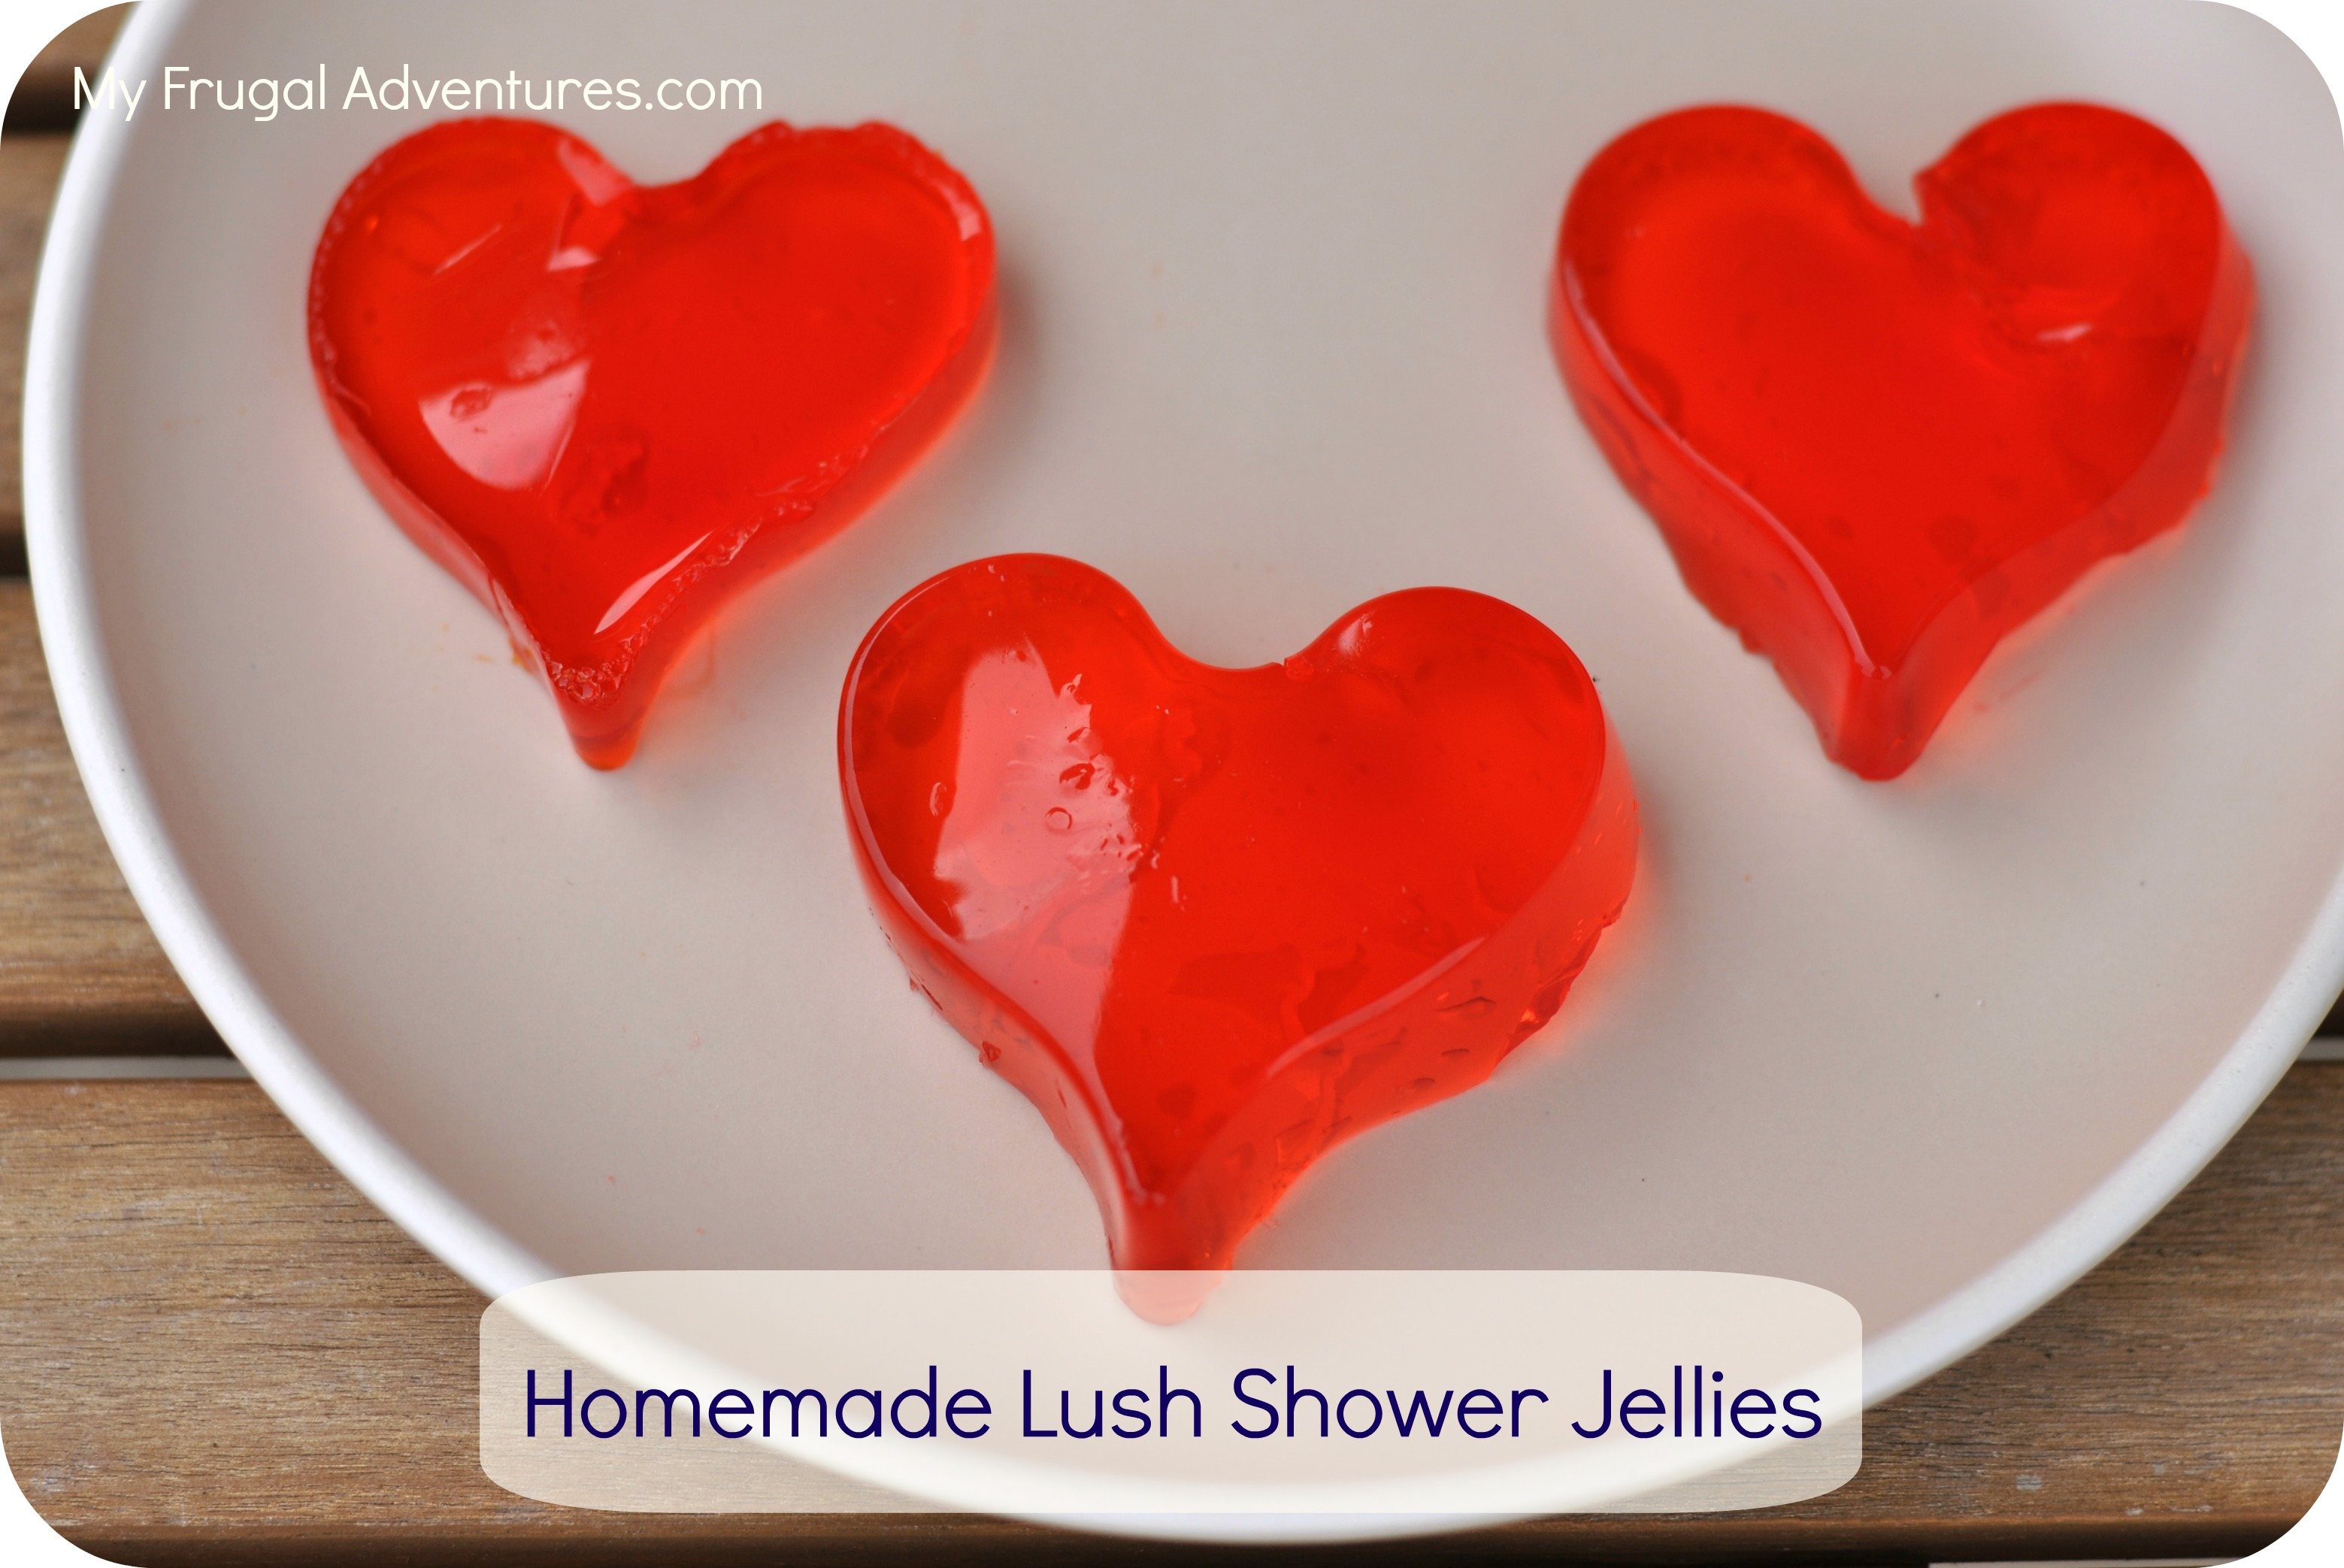 Homemade Lush Shower Jellies - My Frugal Adventures